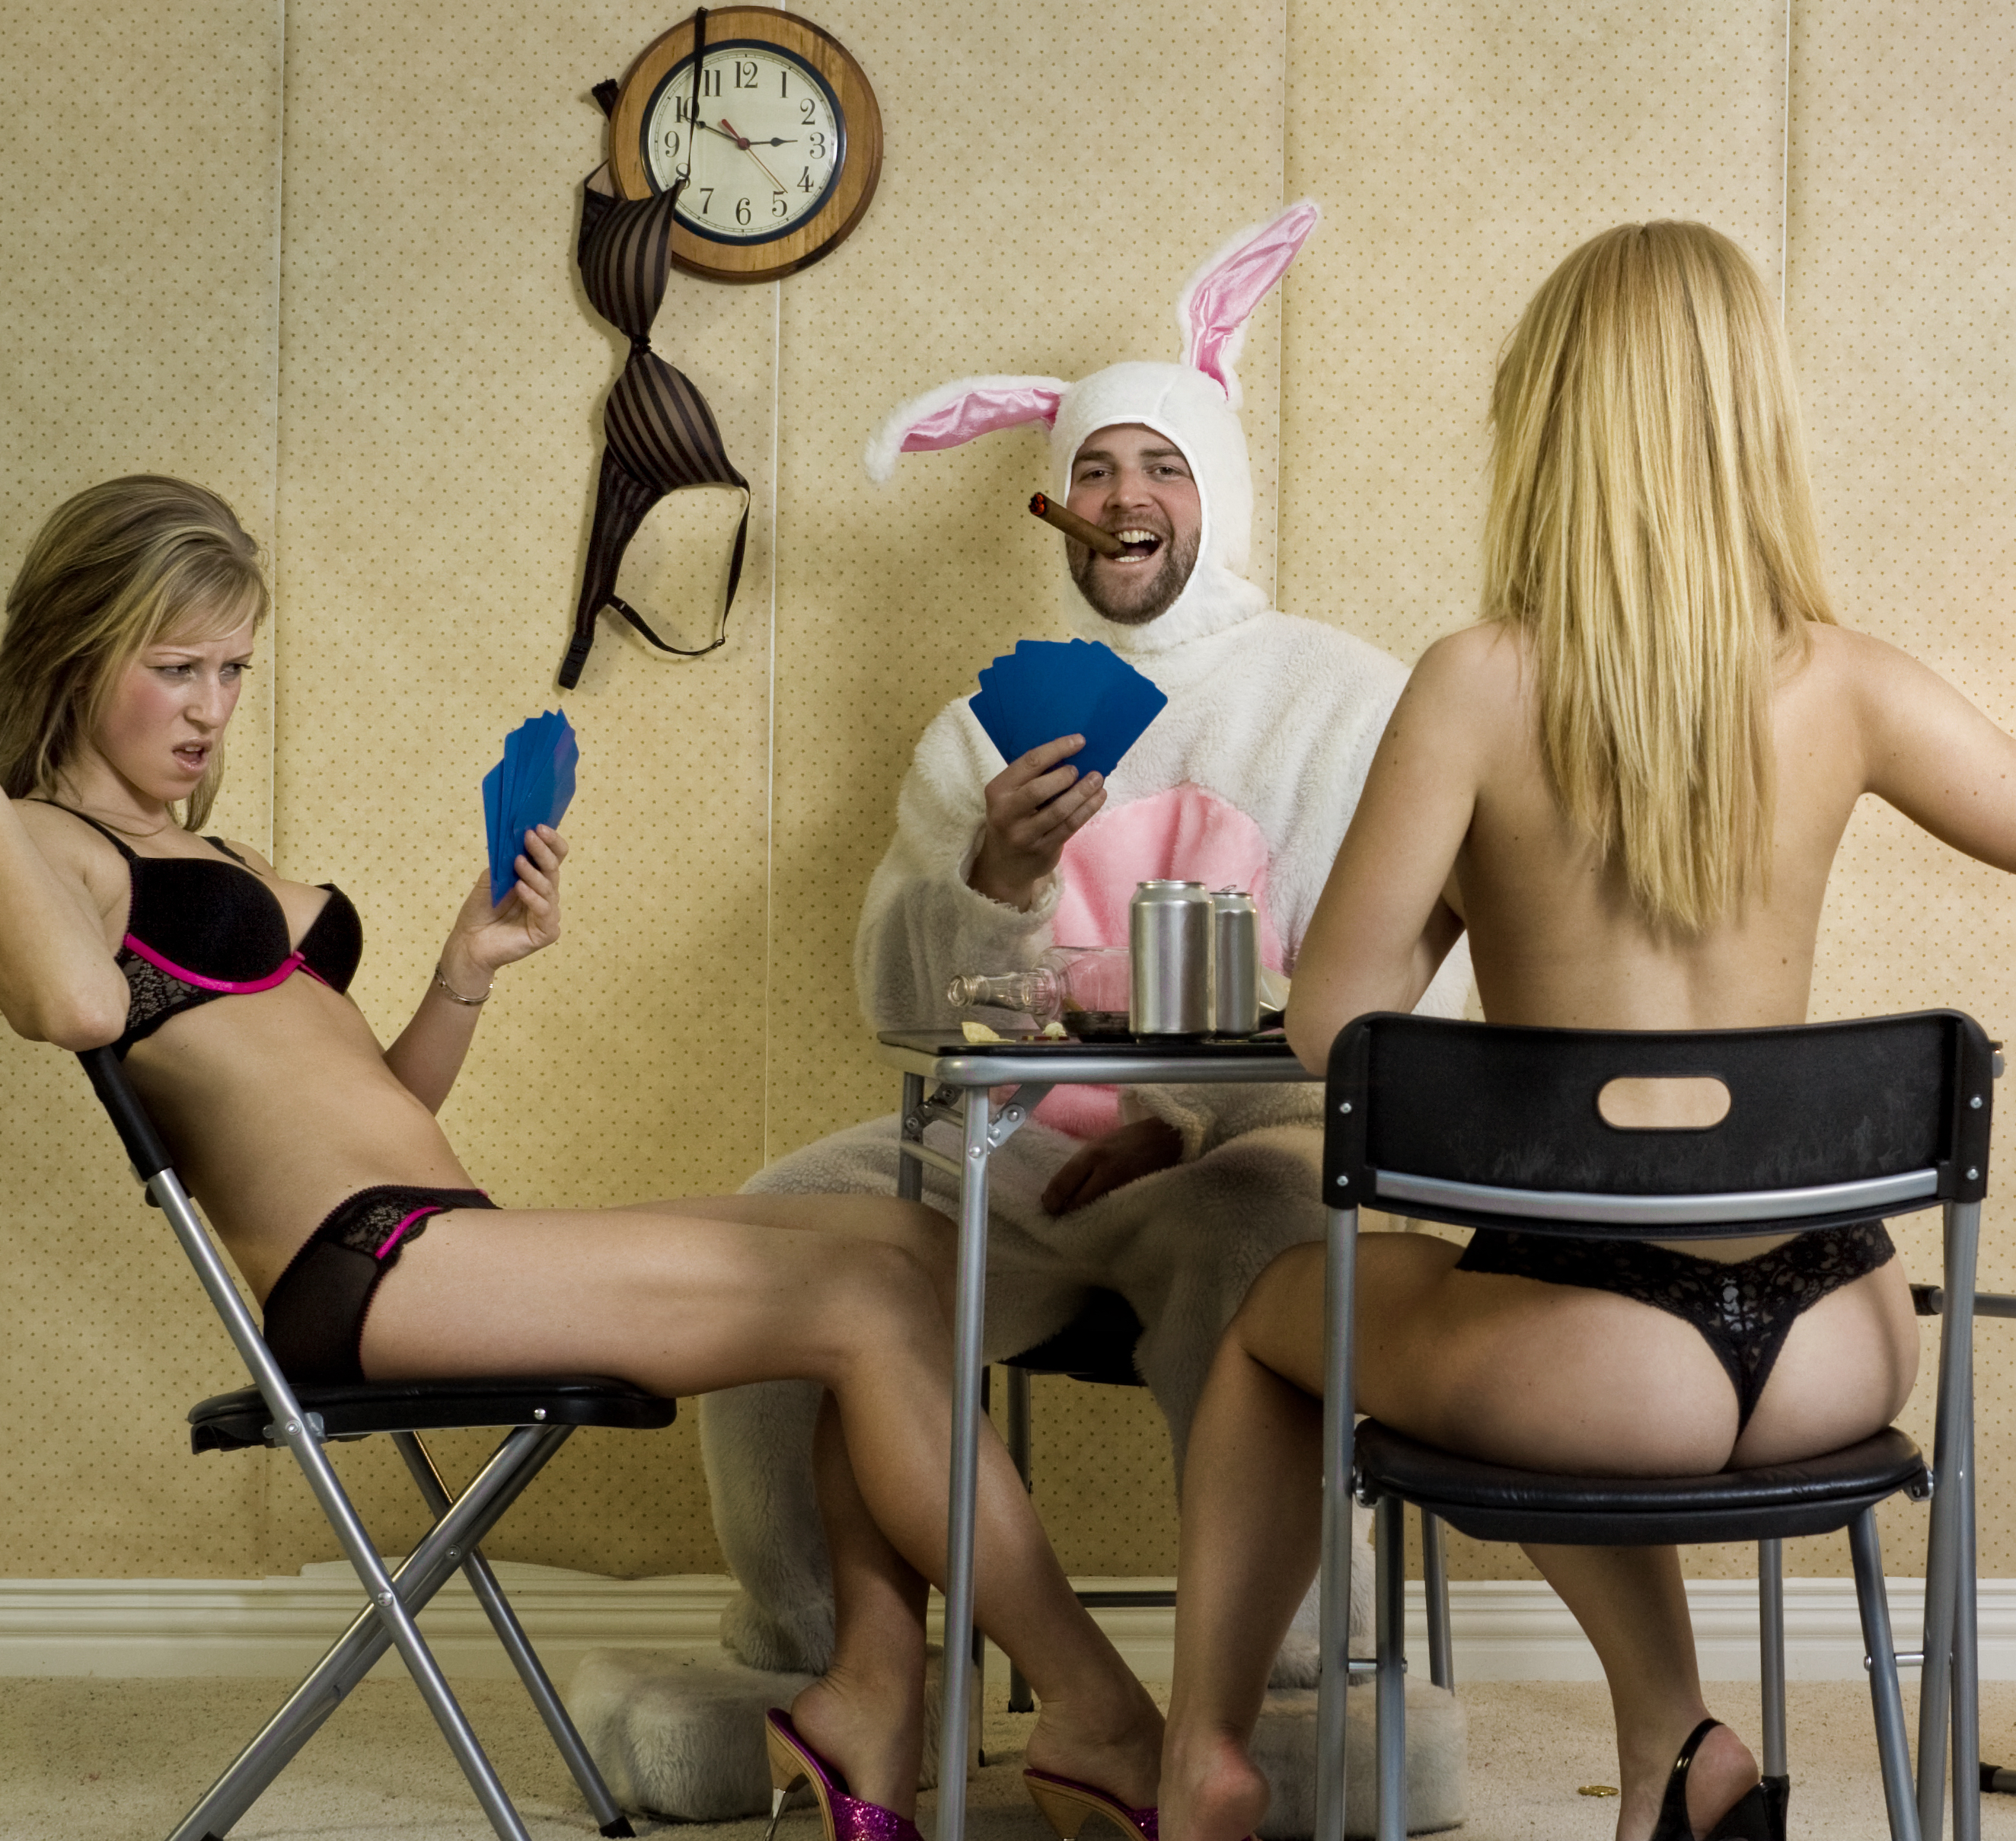 Your idea couples playing strip poker